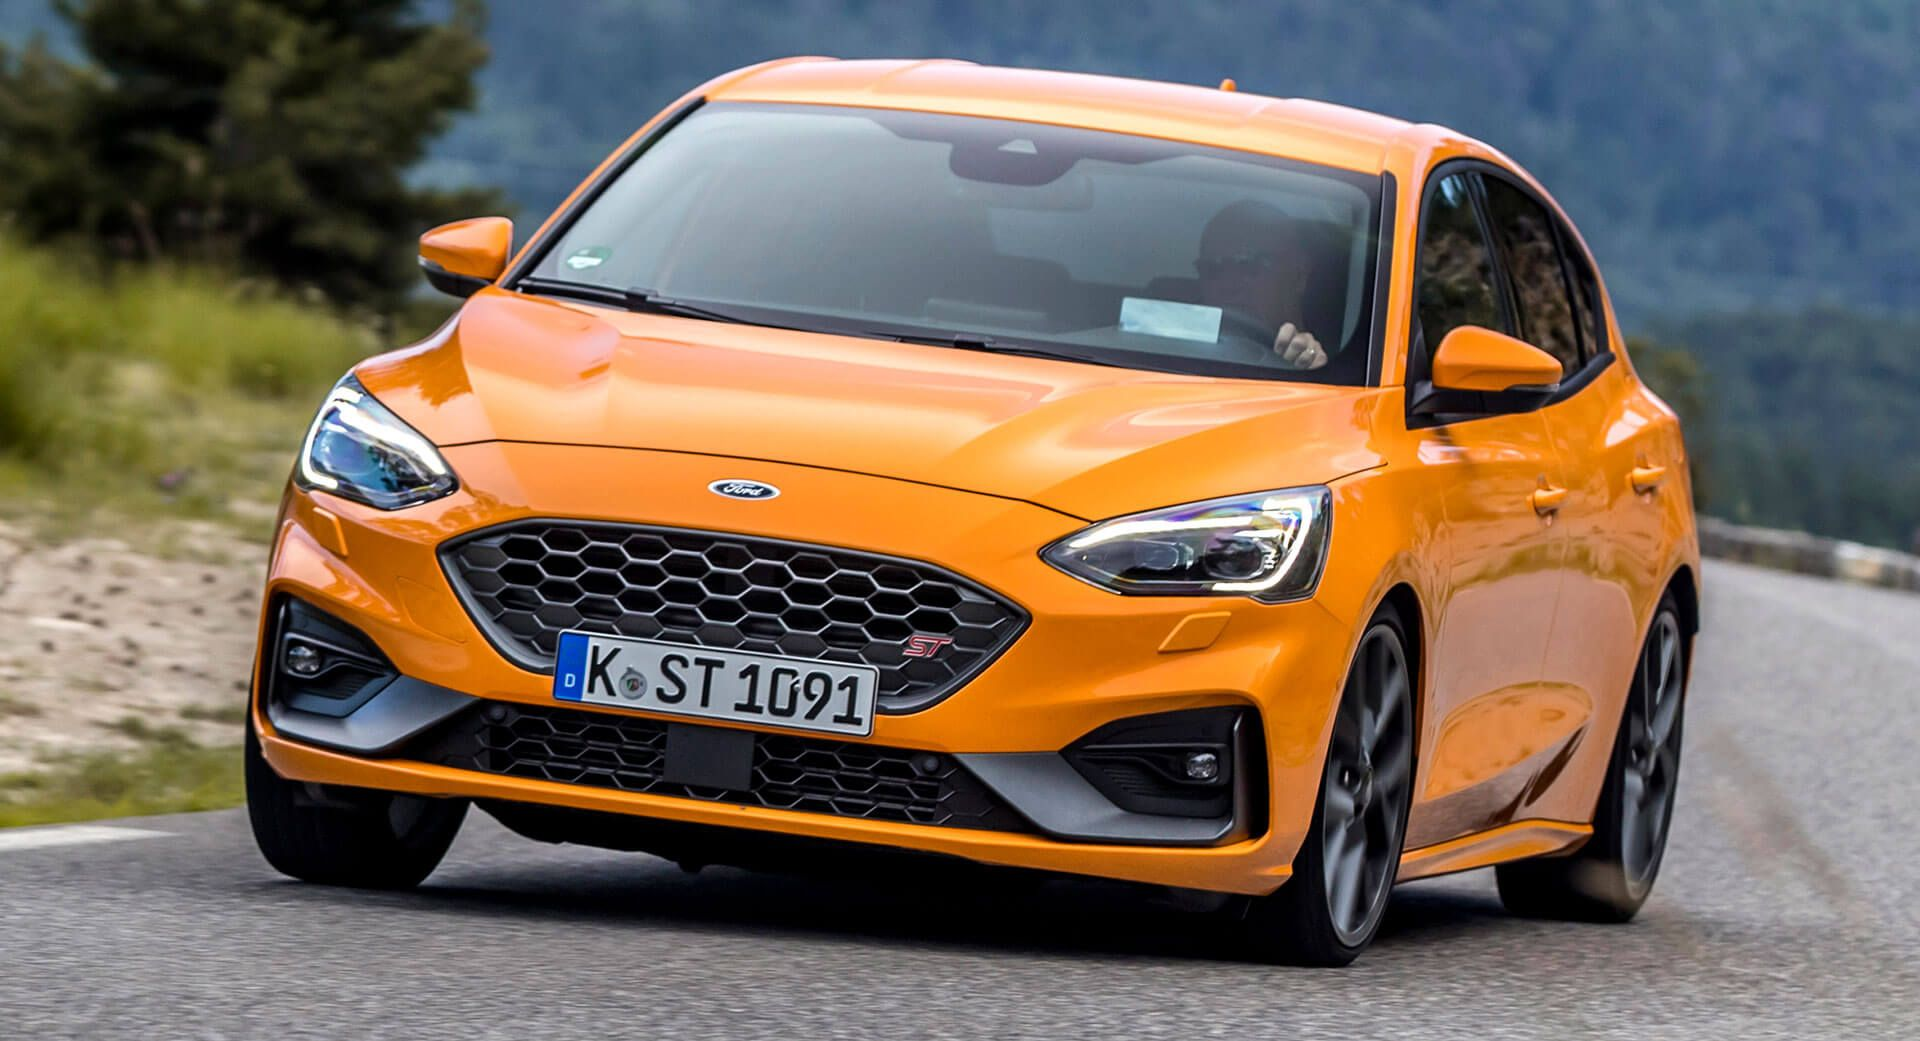 2020 Ford Focus St Heads Down Under With 276 Hp Petrol Four Aud 44 690 Starting Price Ford Focus Schaltknuppel Automatikgetriebe